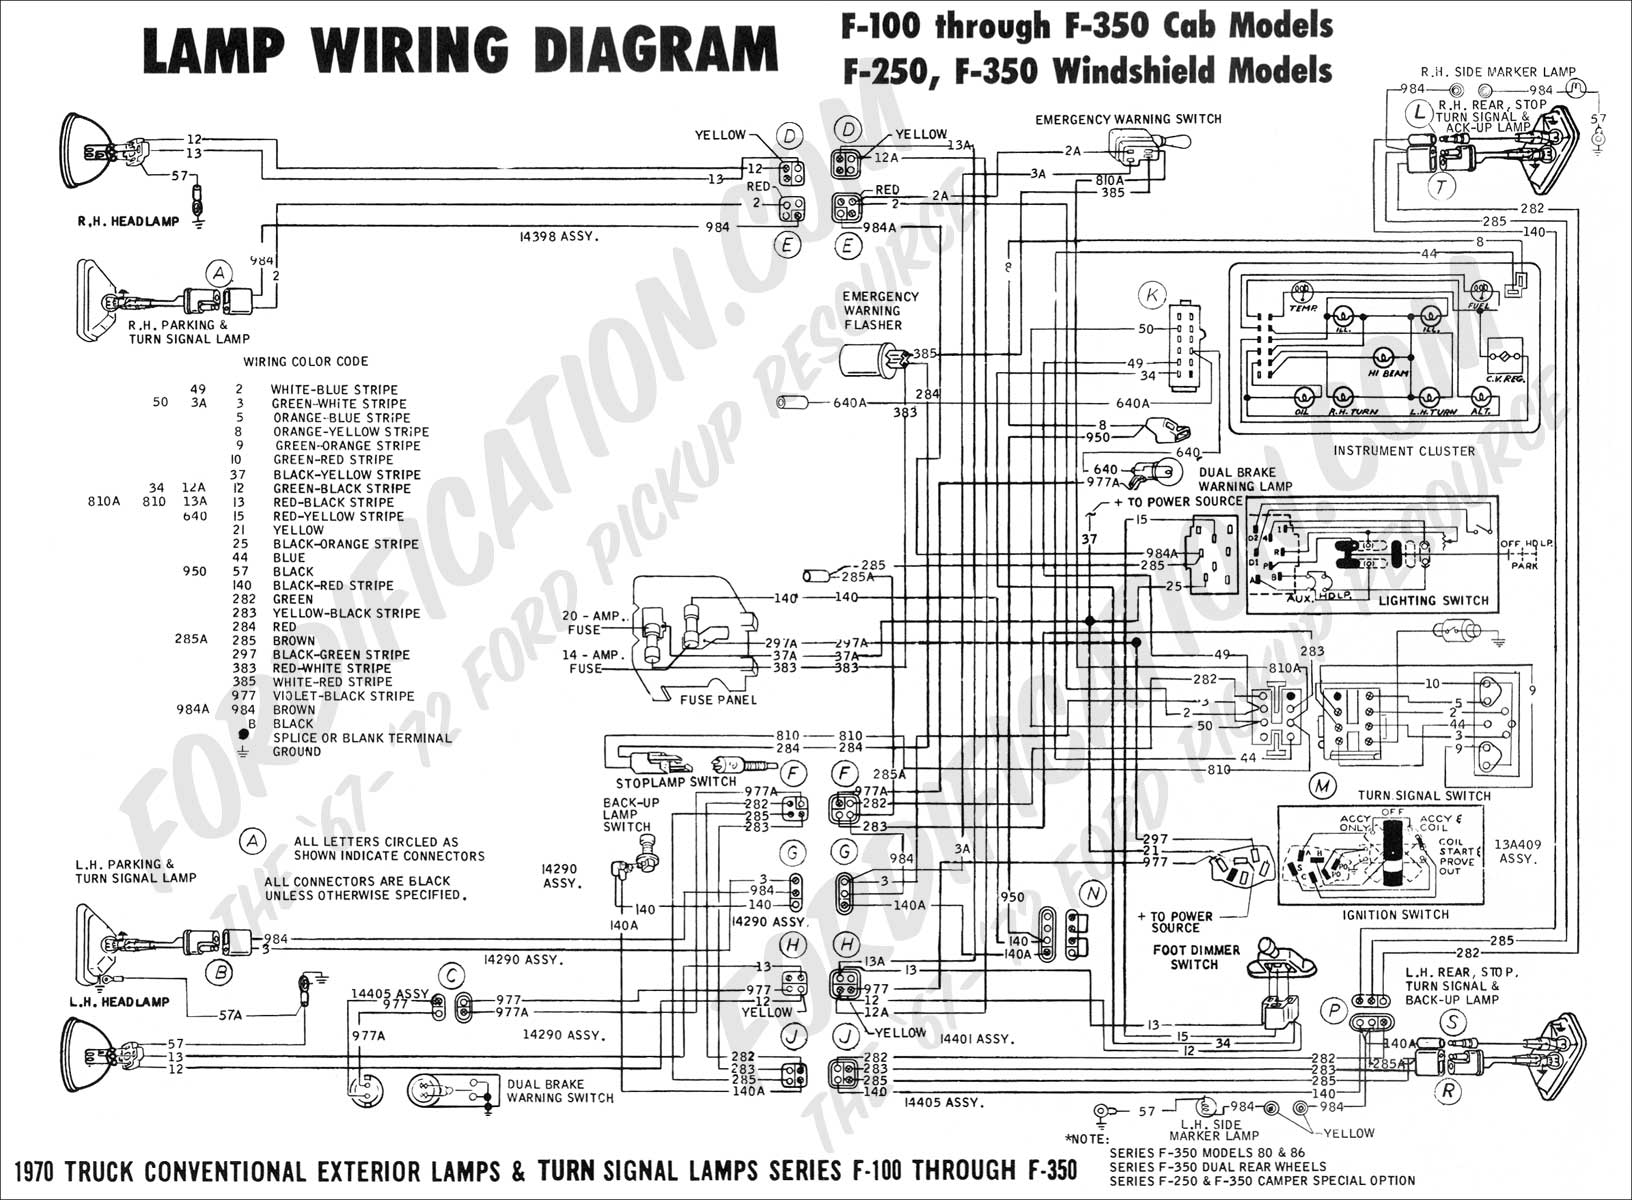 also 1999 Ford F250 Interior Fuse Box Diagram besides 1301216 71 F100 Electrical Help likewise 0d3gs Find Fuse Diagram 1994 Ford Econoline 150 Van 4 9 further Ignition Control Module Location. on 94 ford e350 van fuse box diagram